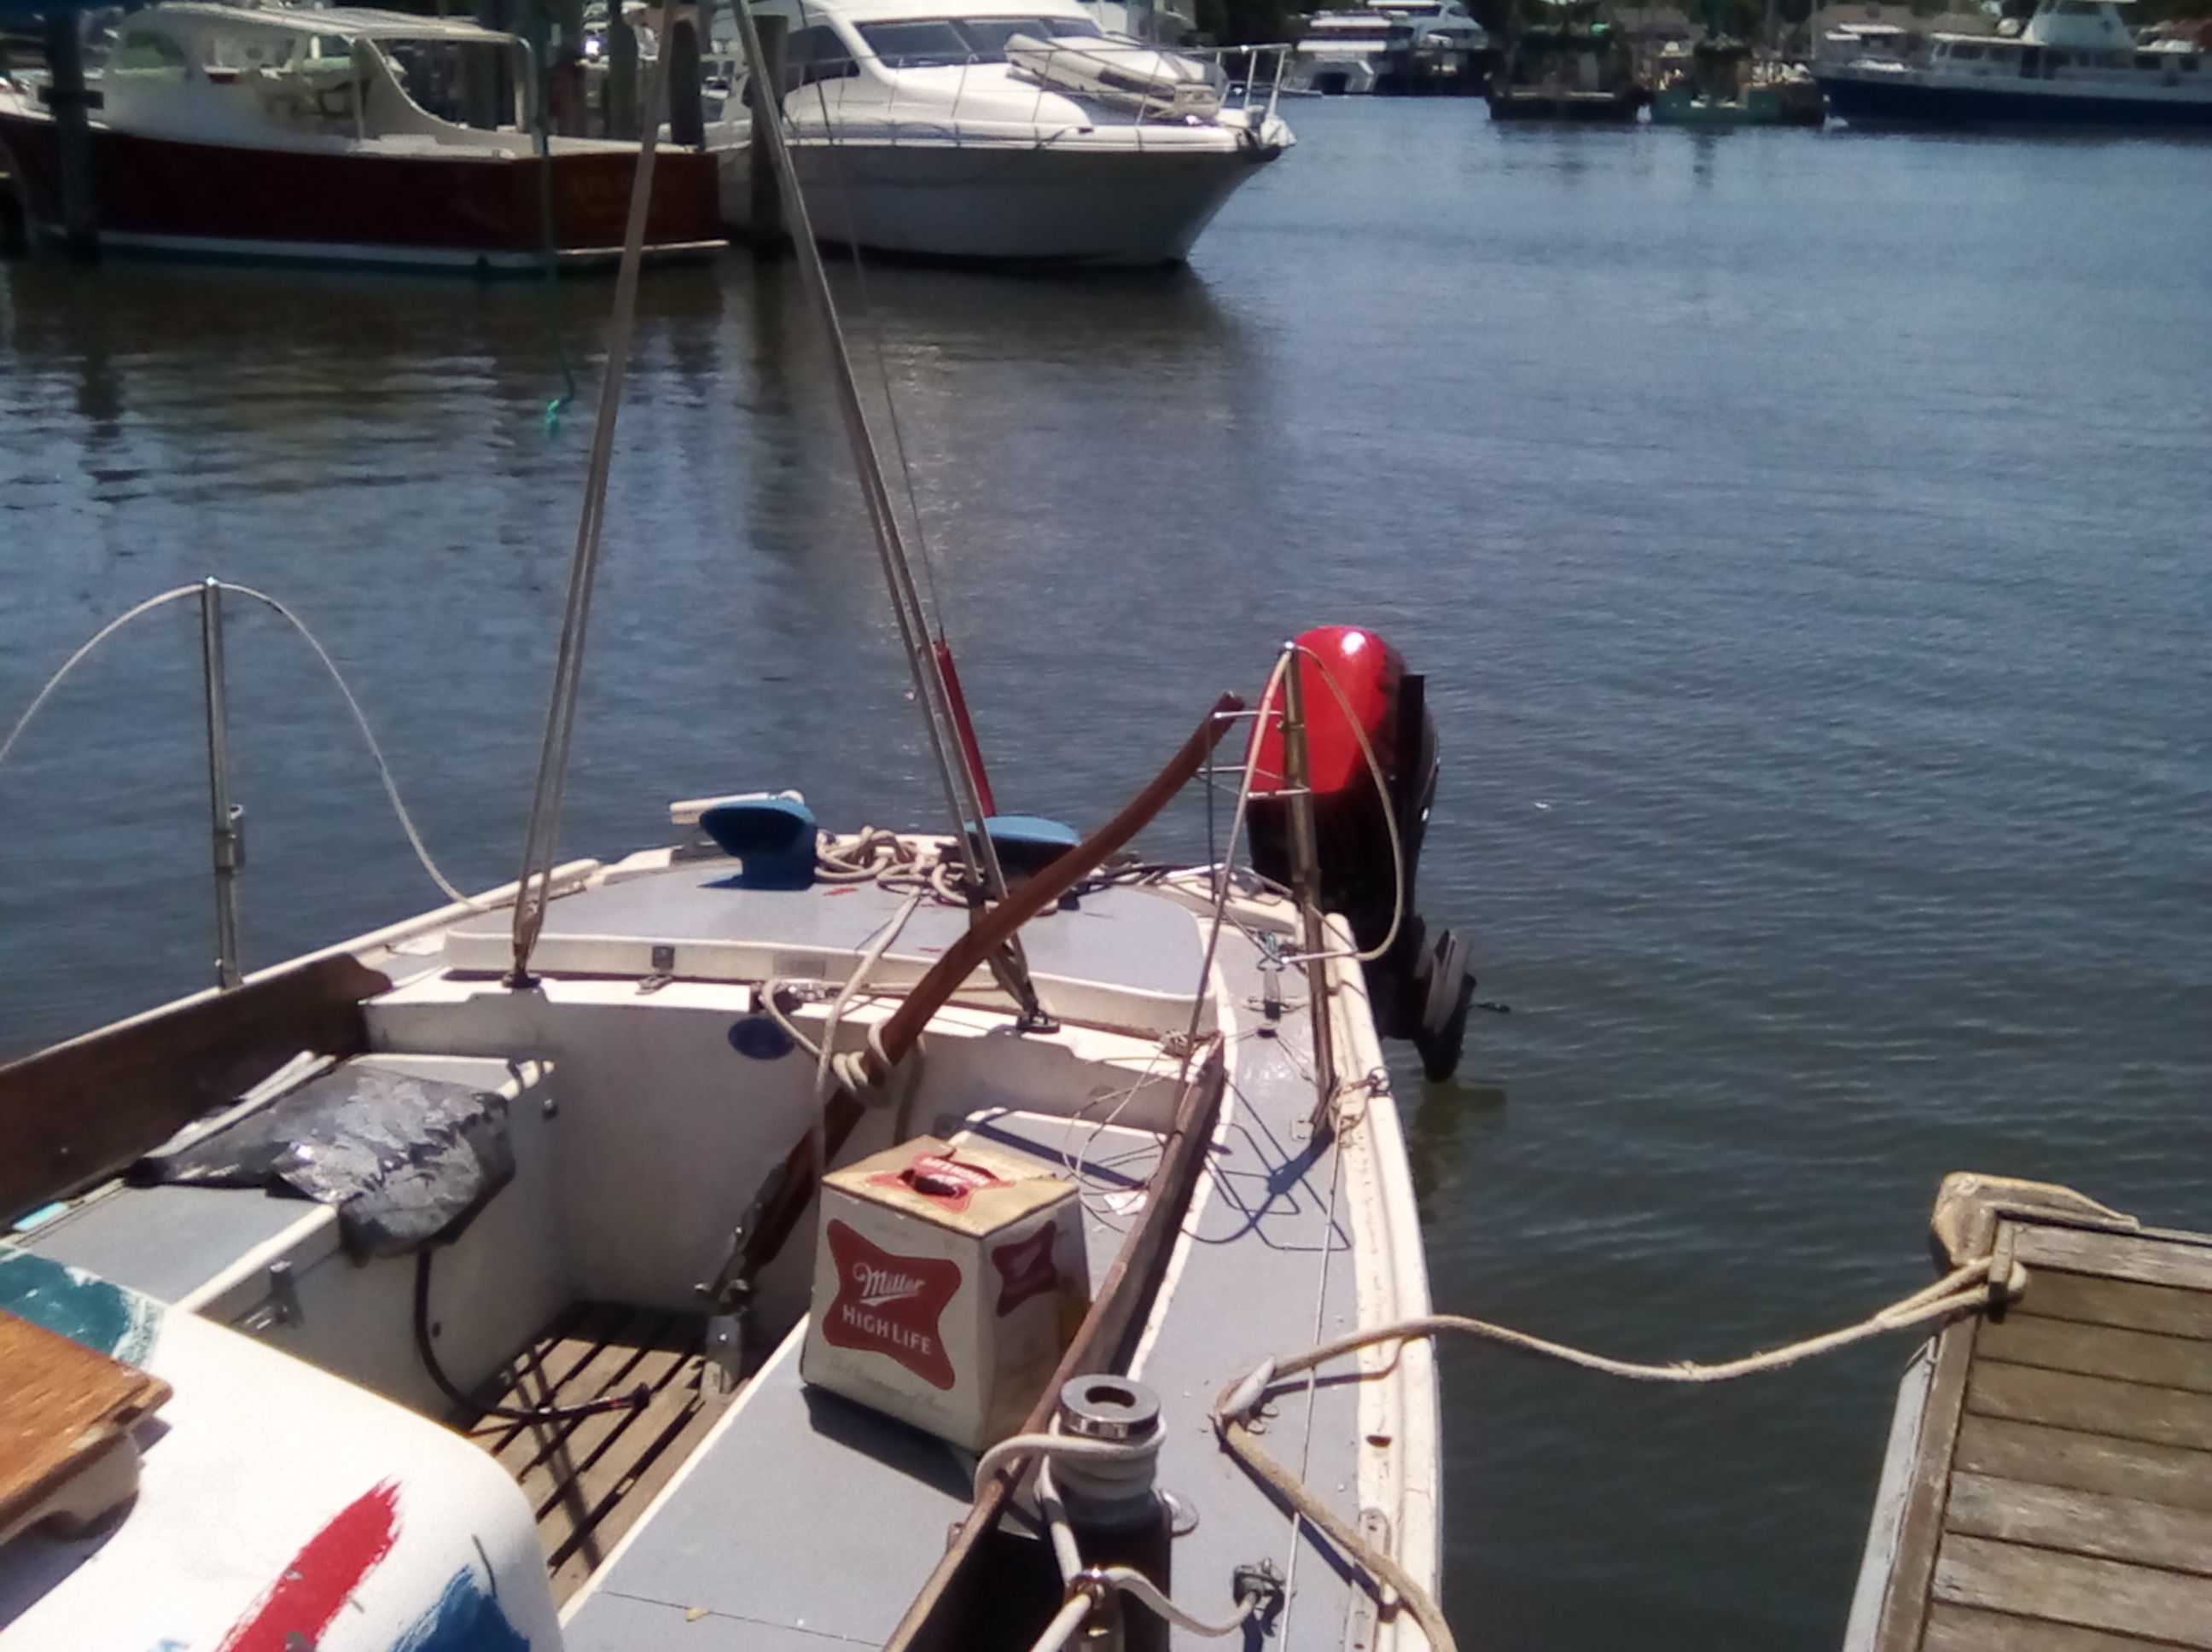 img_20180713_124658-jpg.44439_Here's my boat, the 'happy adventure'_Boat Punk / Sailing_Squat the Planet_10:01 AM